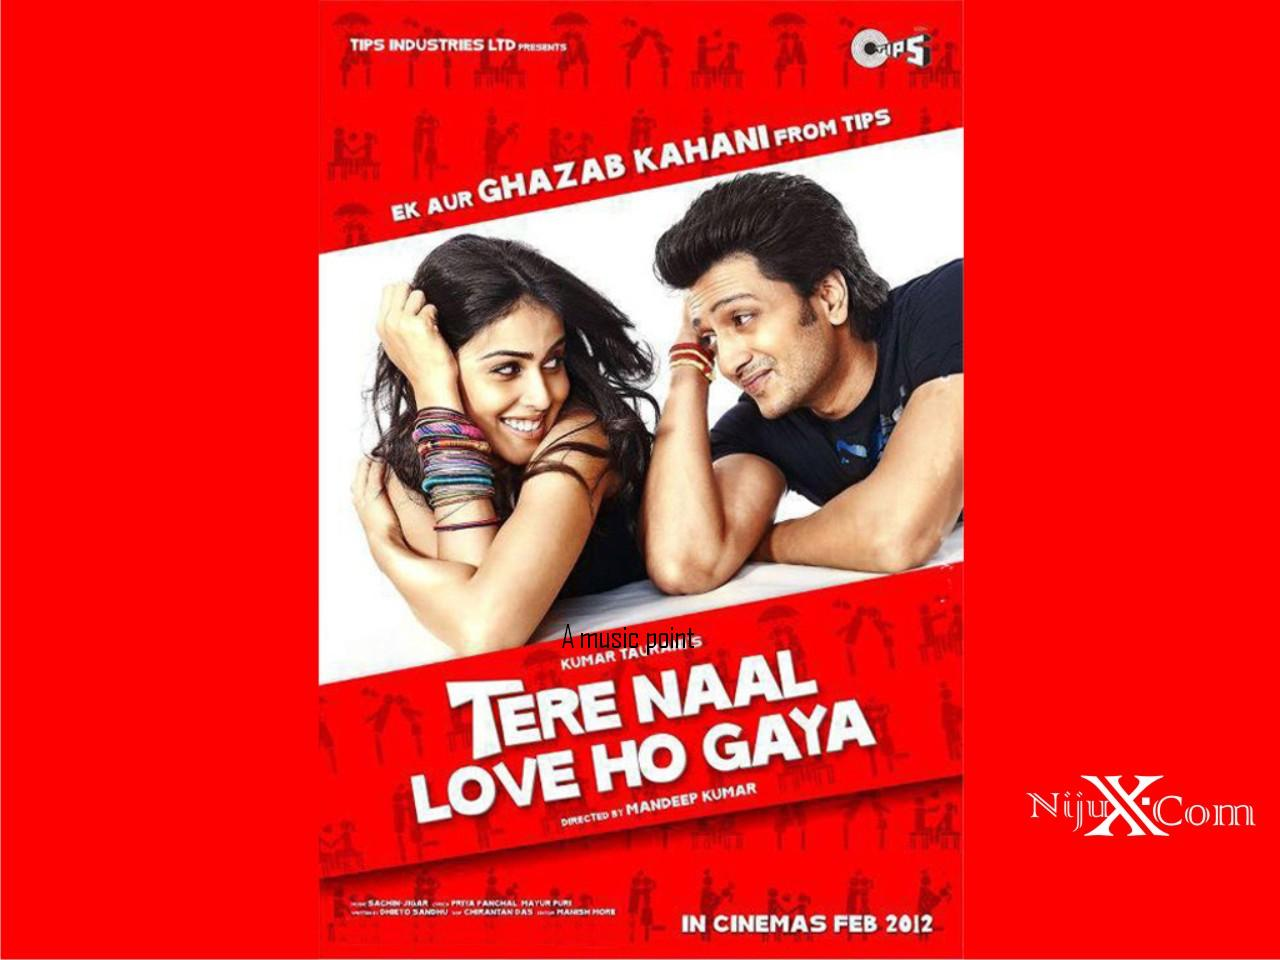 red hindi movie mp3 songs free download